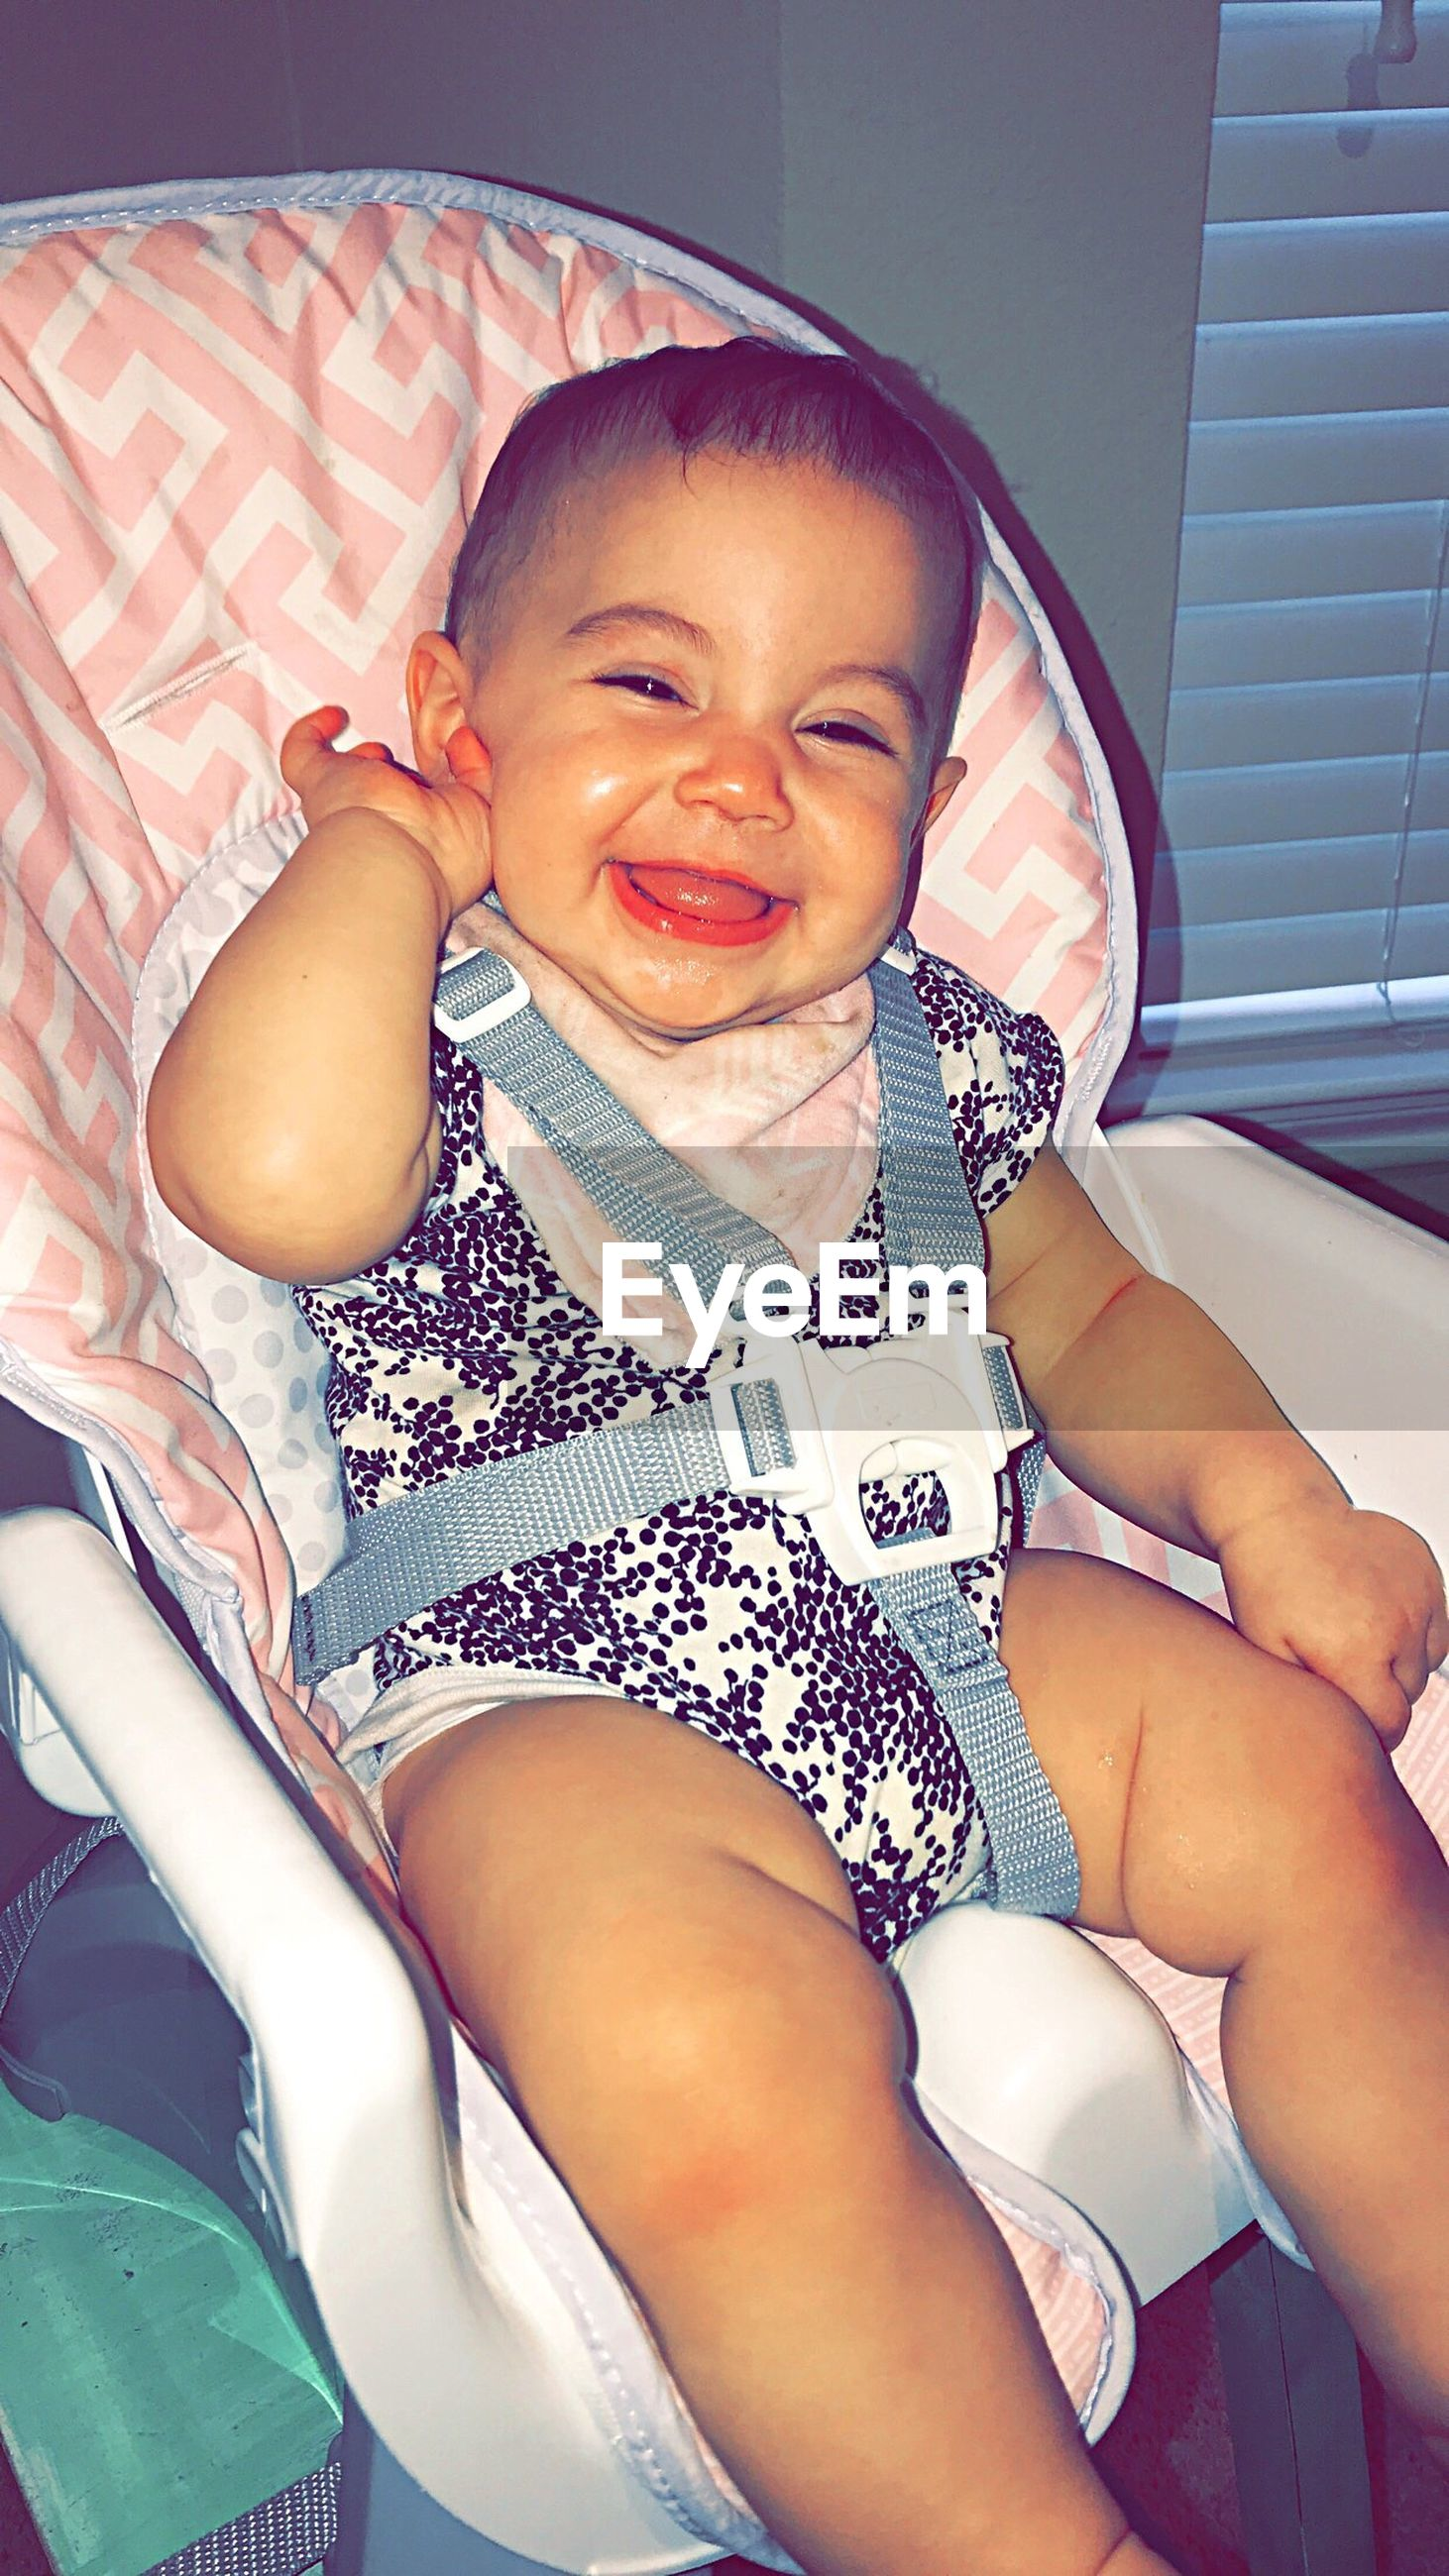 baby, real people, cute, happiness, babyhood, childhood, front view, new life, smiling, lifestyles, portrait, home interior, indoors, looking at camera, sitting, full length, cheerful, bonding, day, fragility, human hand, close-up, people